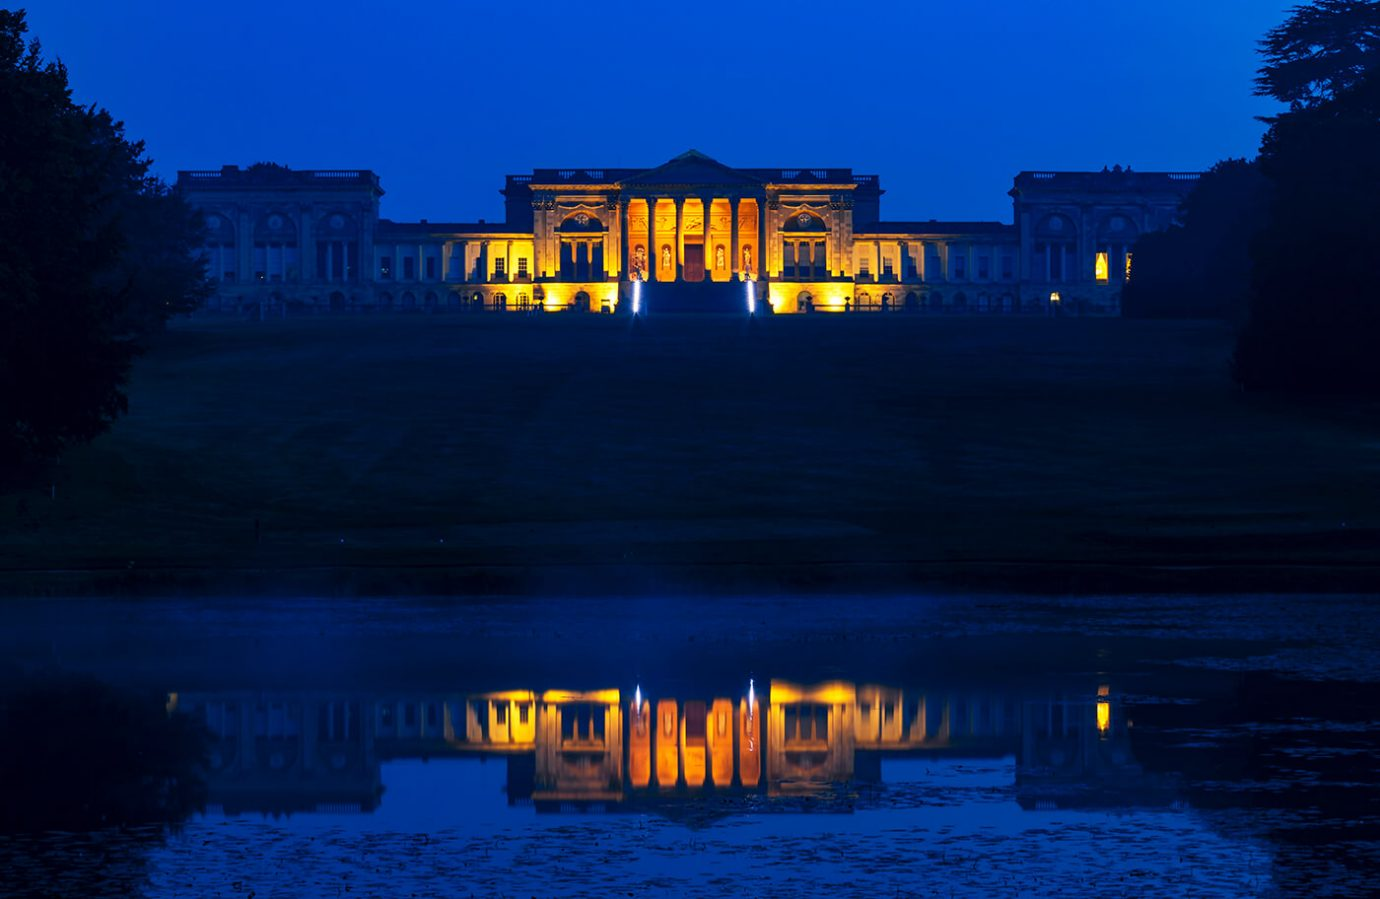 Stowe House Pre-Dawn, Stowe National Trust